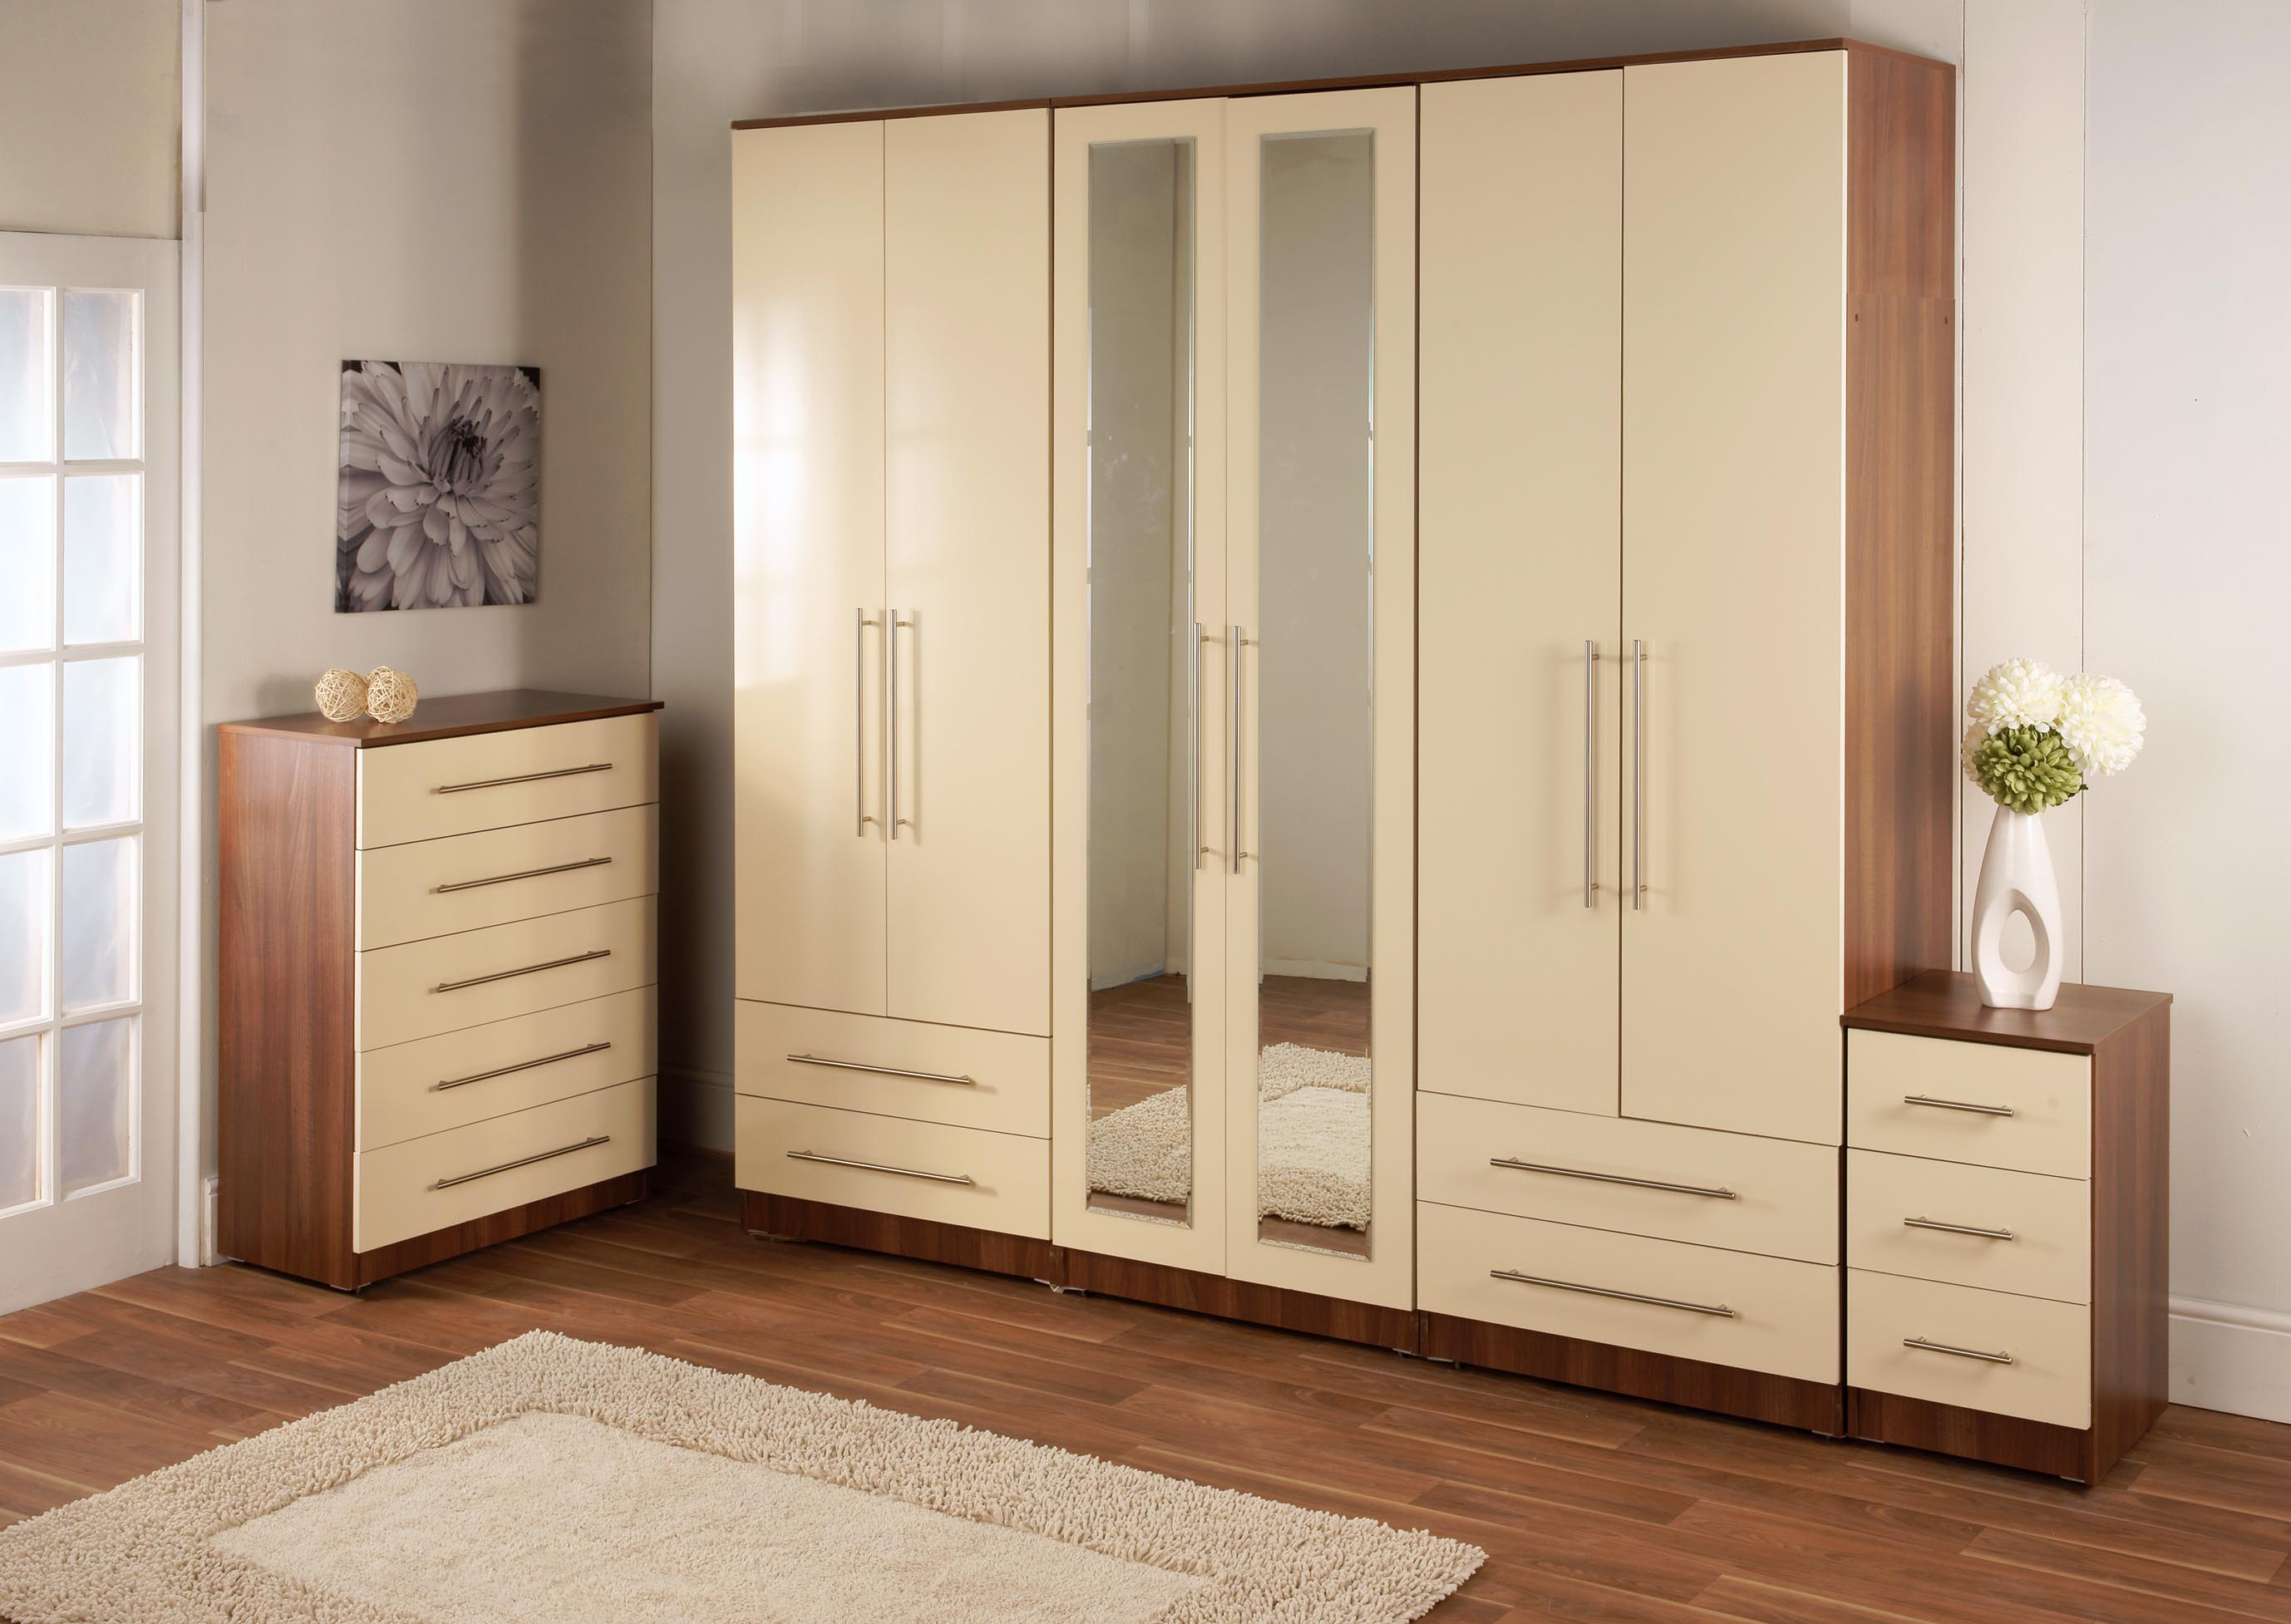 Guide to bespoke fitted bedroom furniture service in london for Bedroom furniture cupboard designs